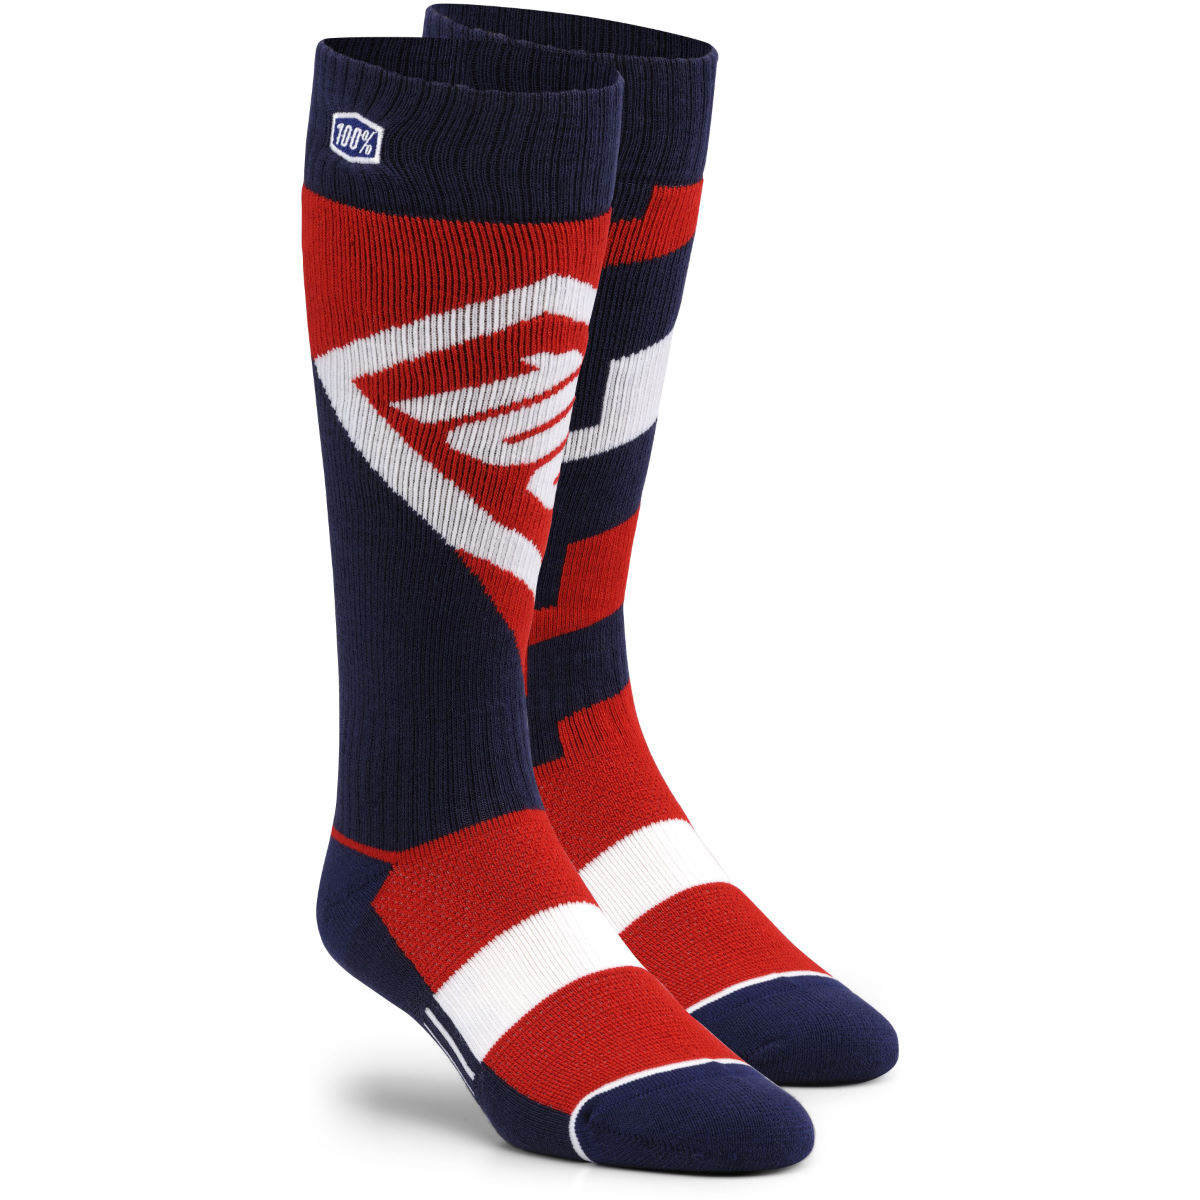 100% Youth Torque Moto Socks - S/M Red | Outdoor Socks